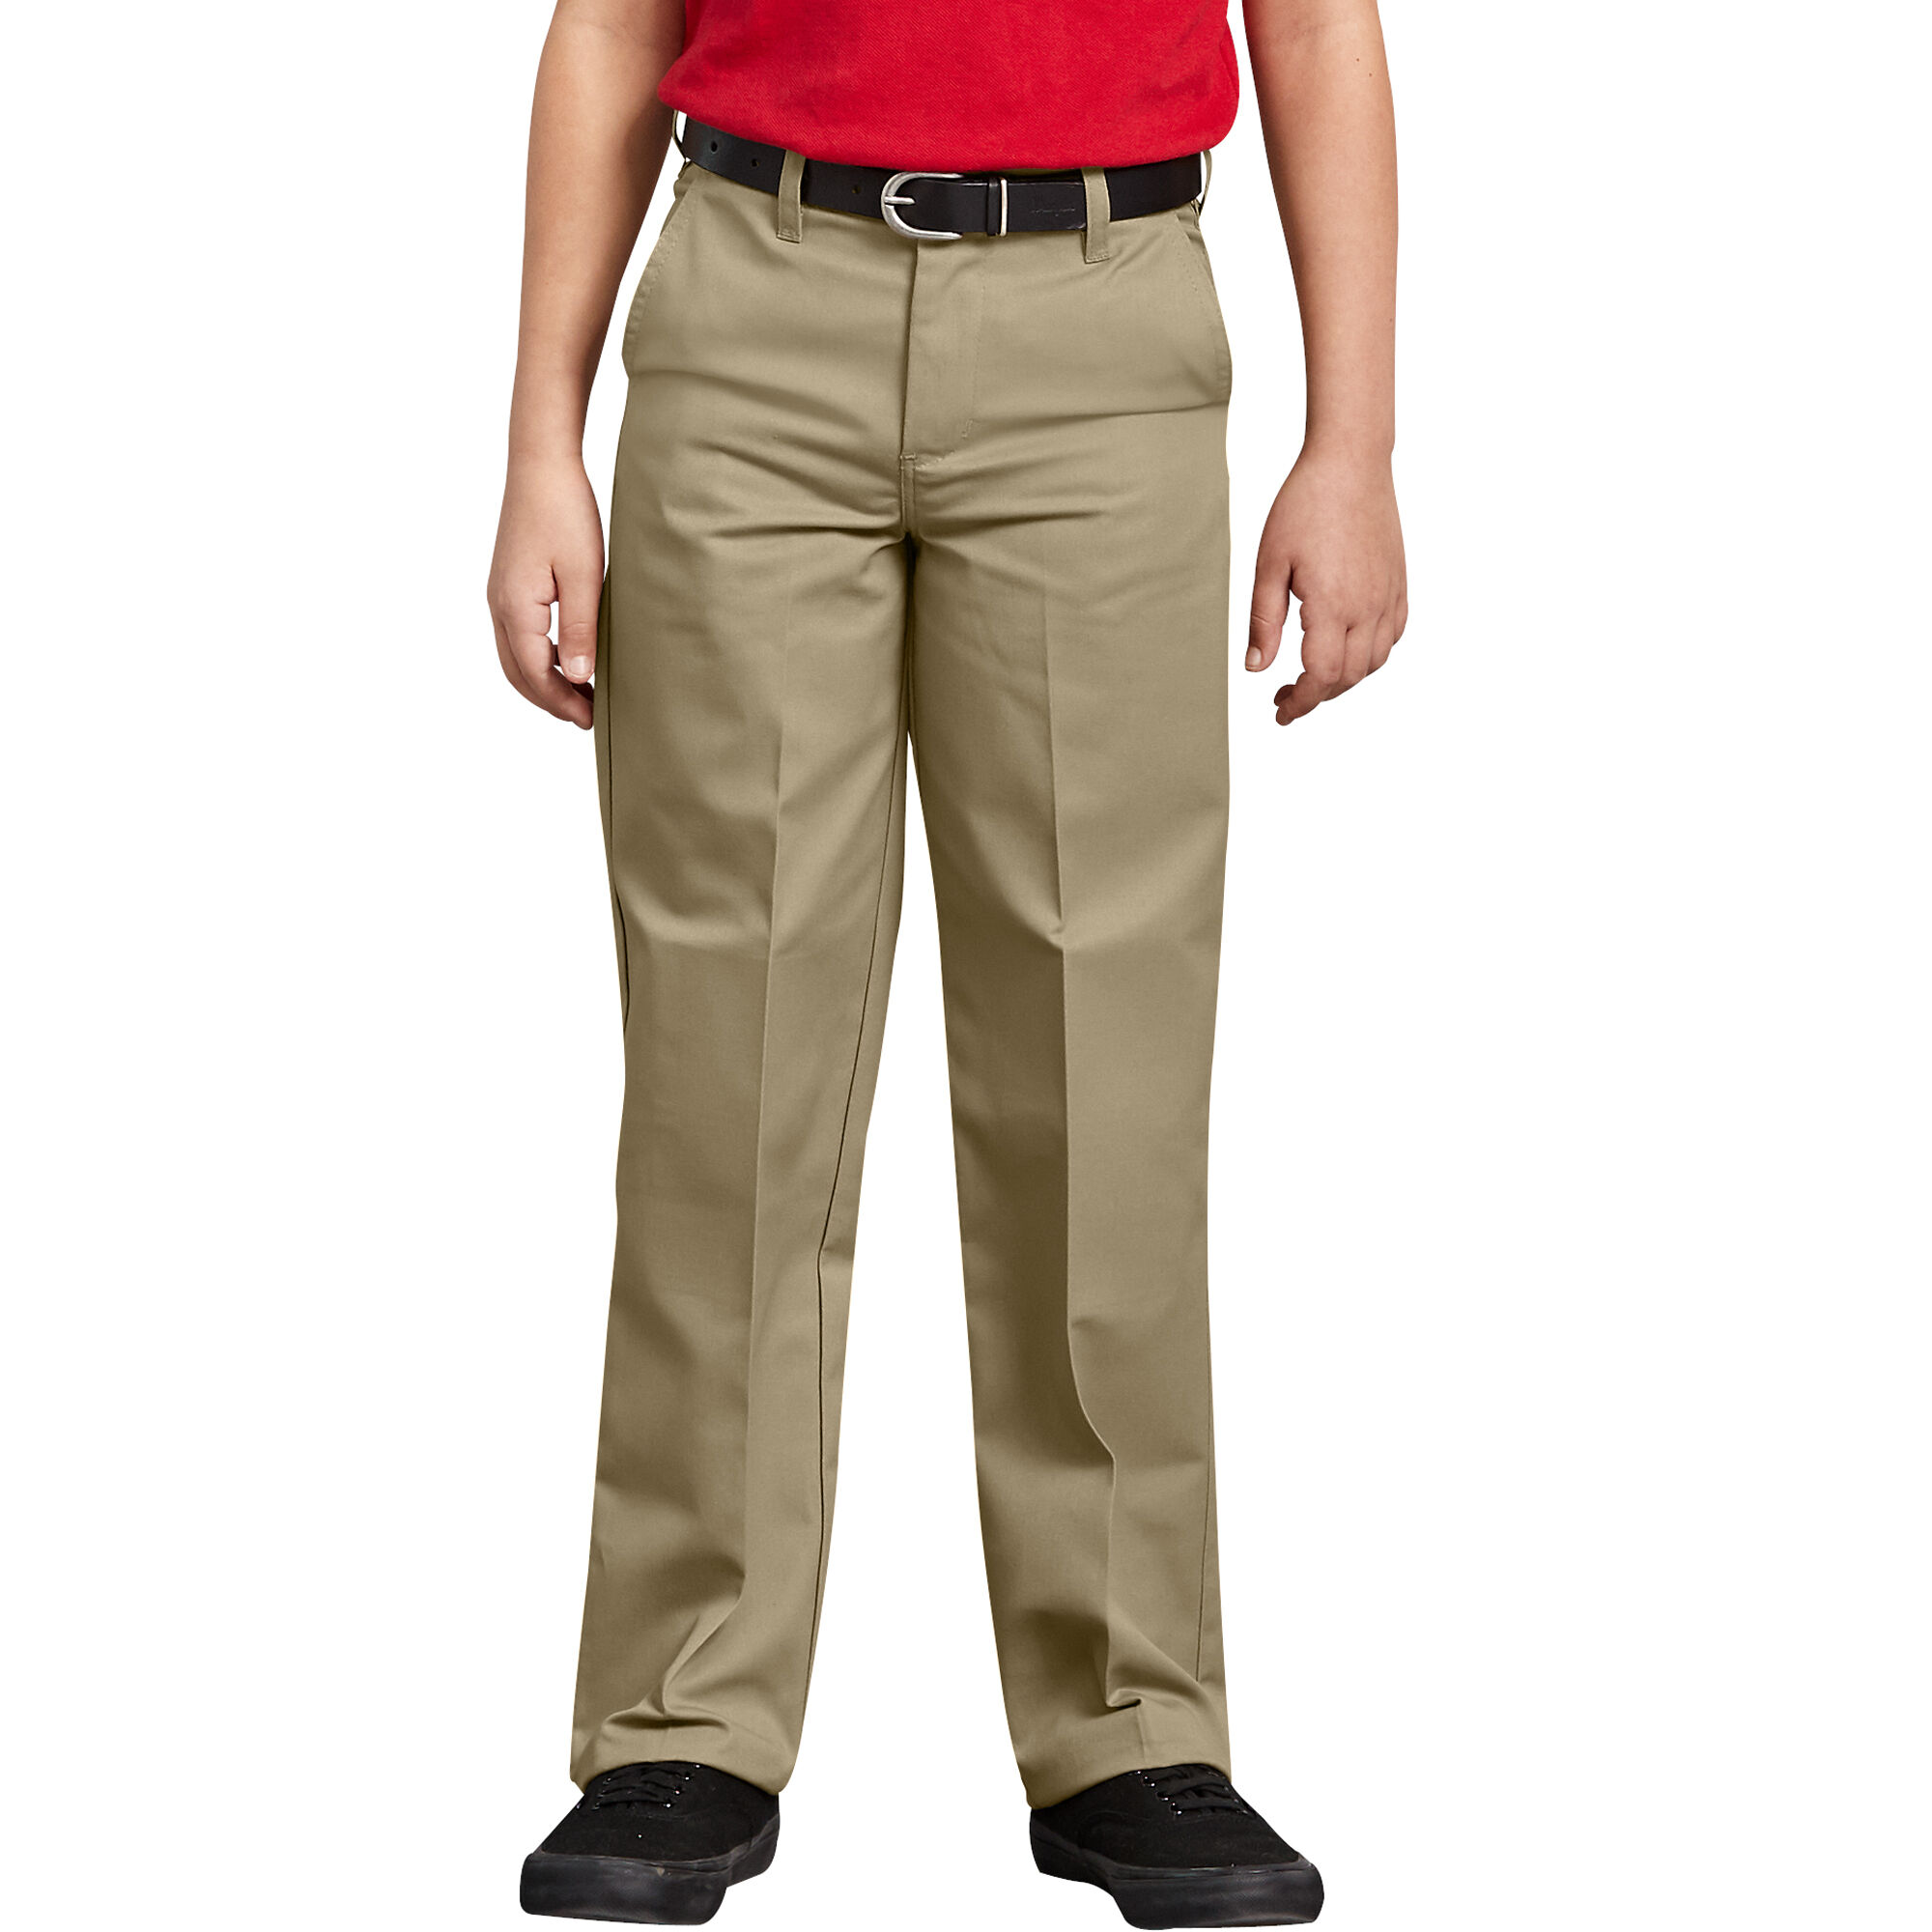 Dickies Boys Khaki Pants Flat Front Classic Fit School Uniform Sizes 4 to 20